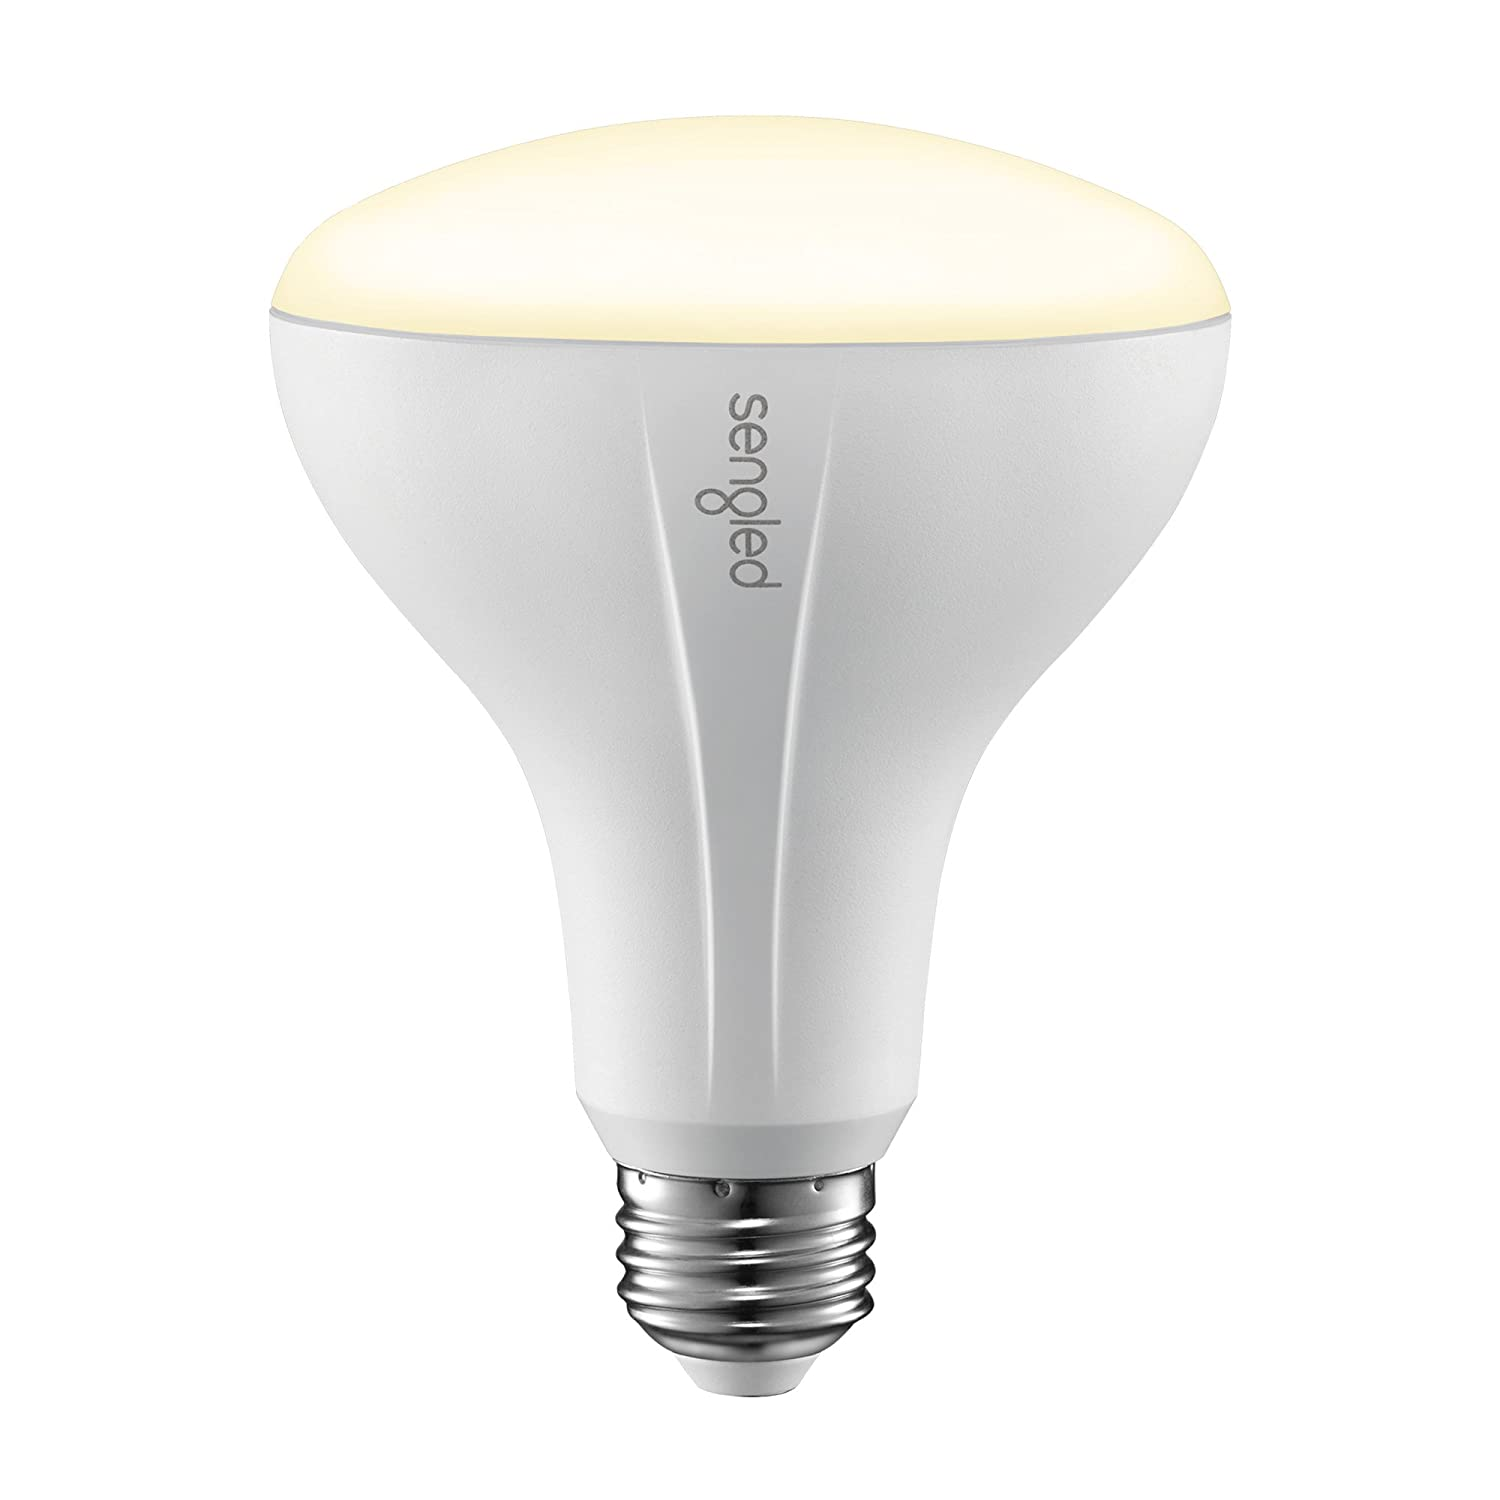 Sengled Element BR30 Smart Home LED Bulb Zigbee Dimmable 60W Equivalent Soft White, Compatible with Samsung SmartThings and Wink Hub, Requires Hub for Alexa,3 Year Warranty